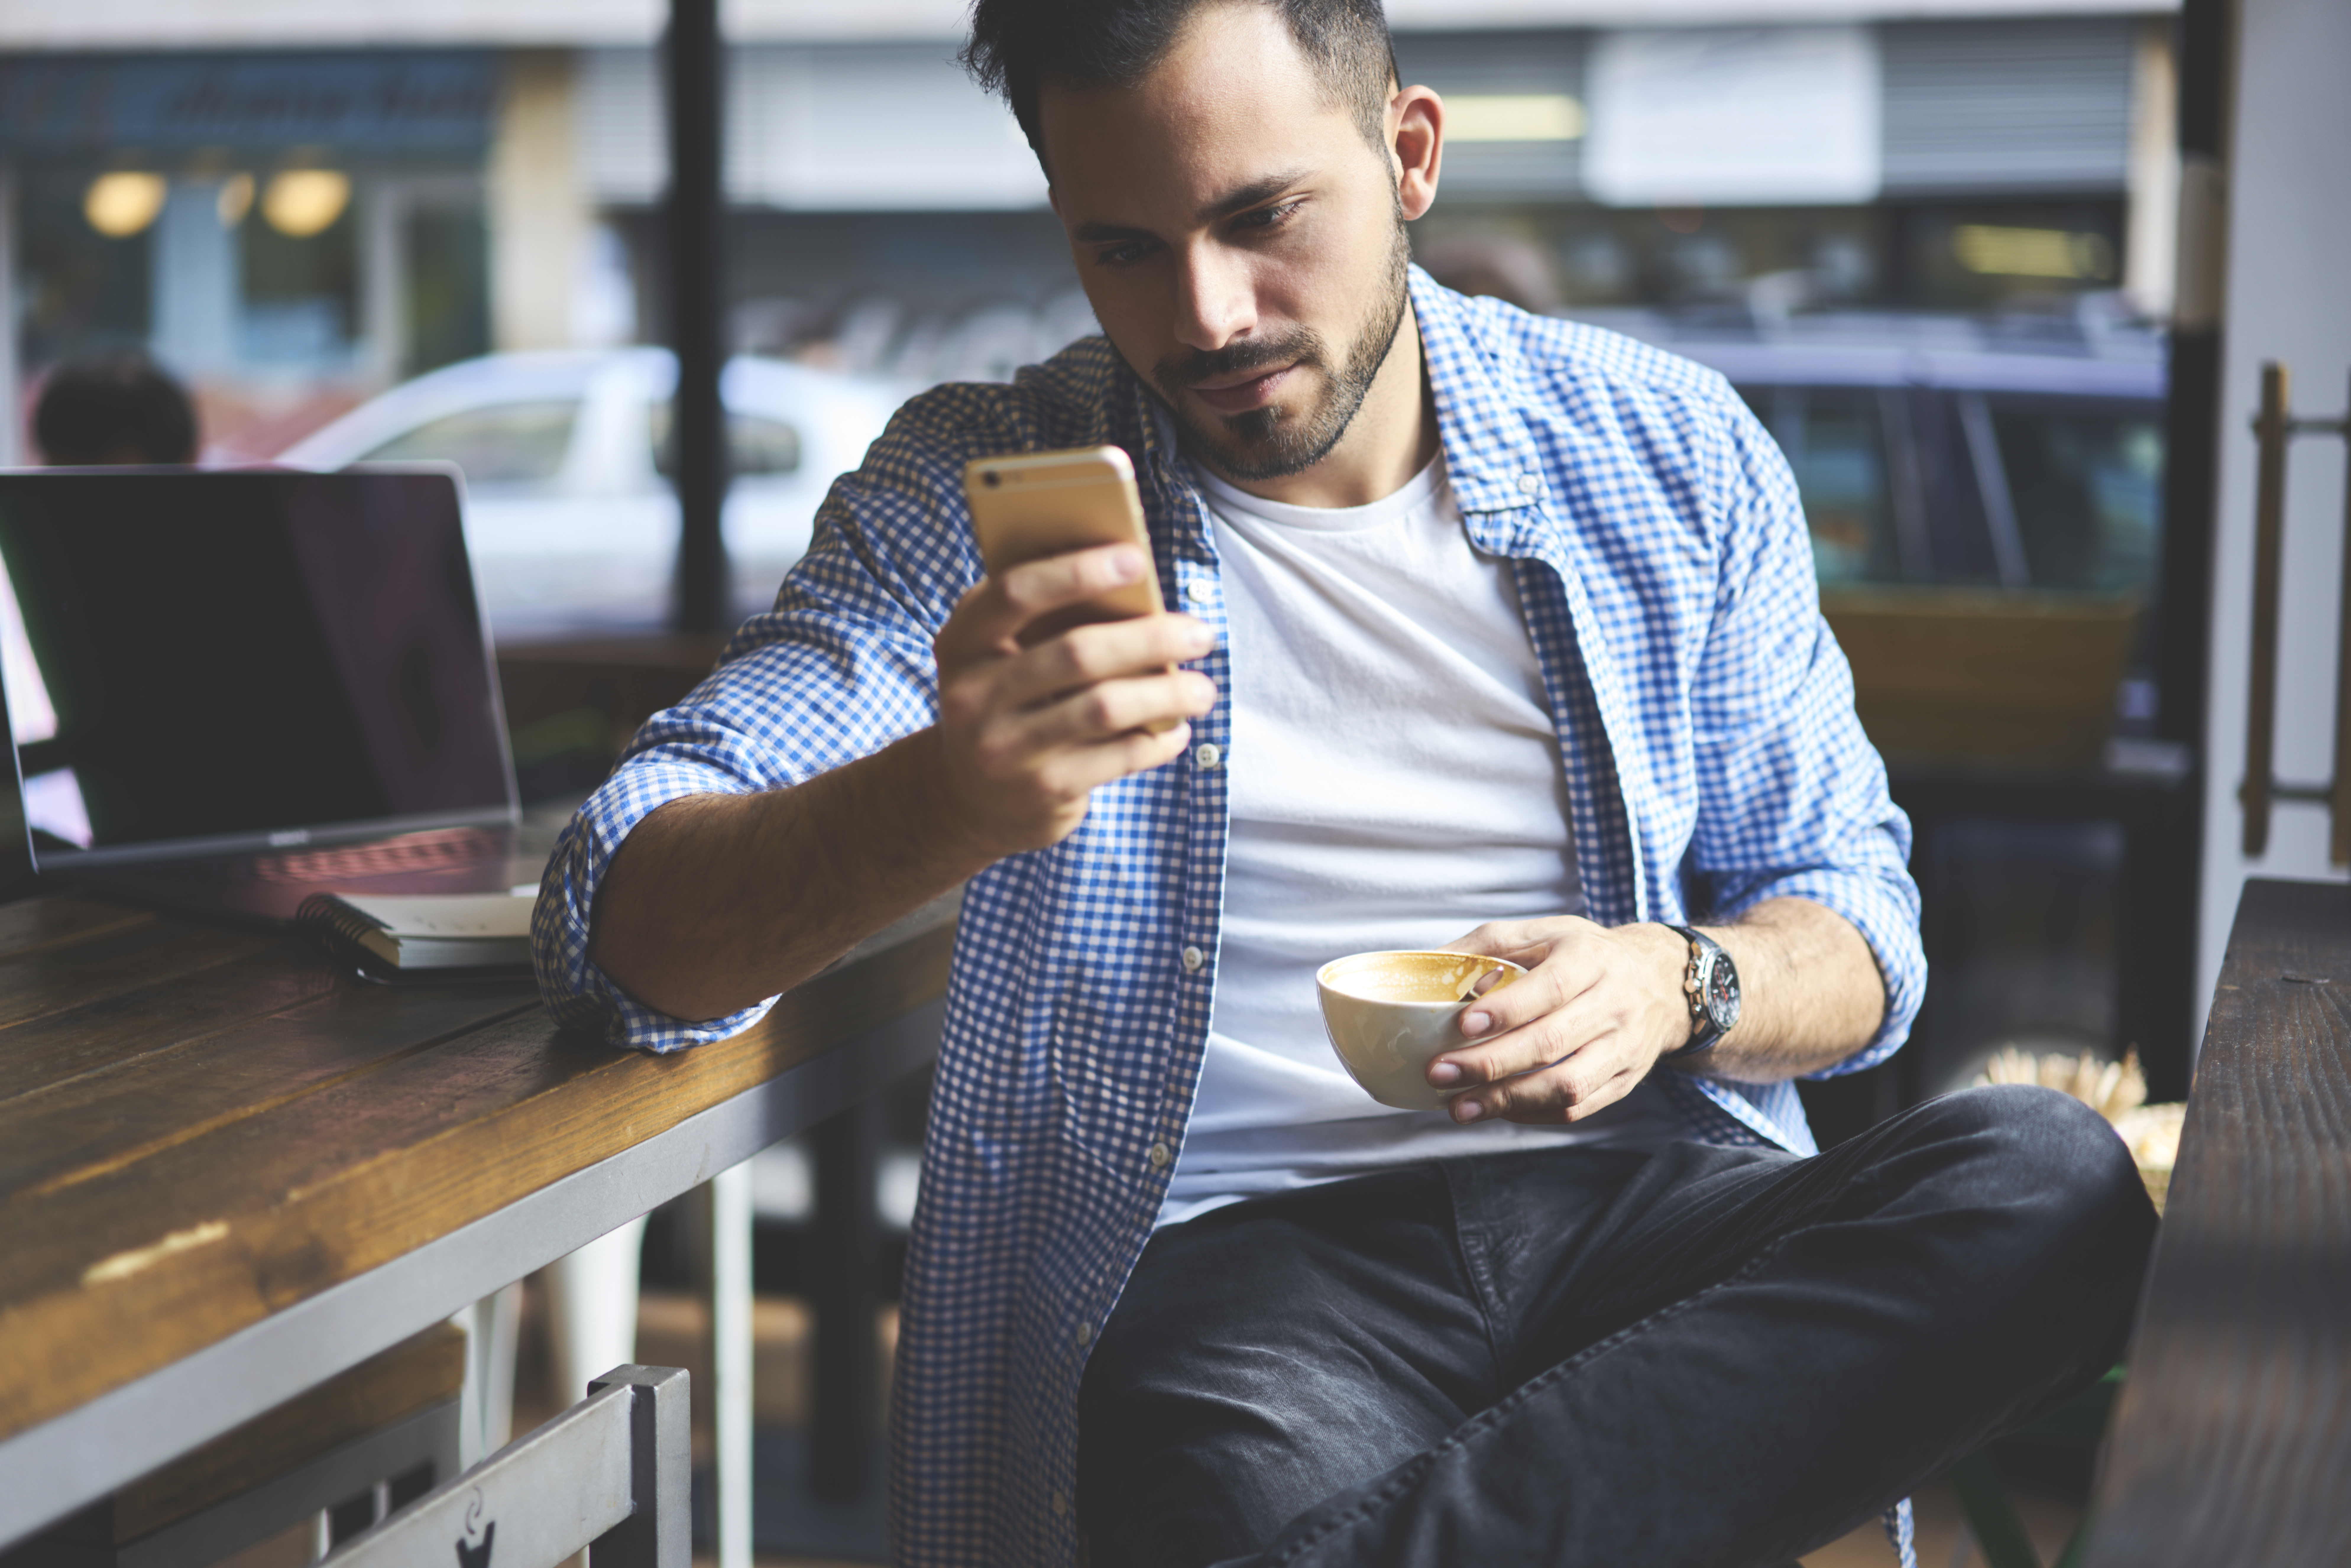 Concentrated casually dressed male freelancer checking email box waiting for transaction using online banking service, serious hipster guy installing application on smartphone during coffee break